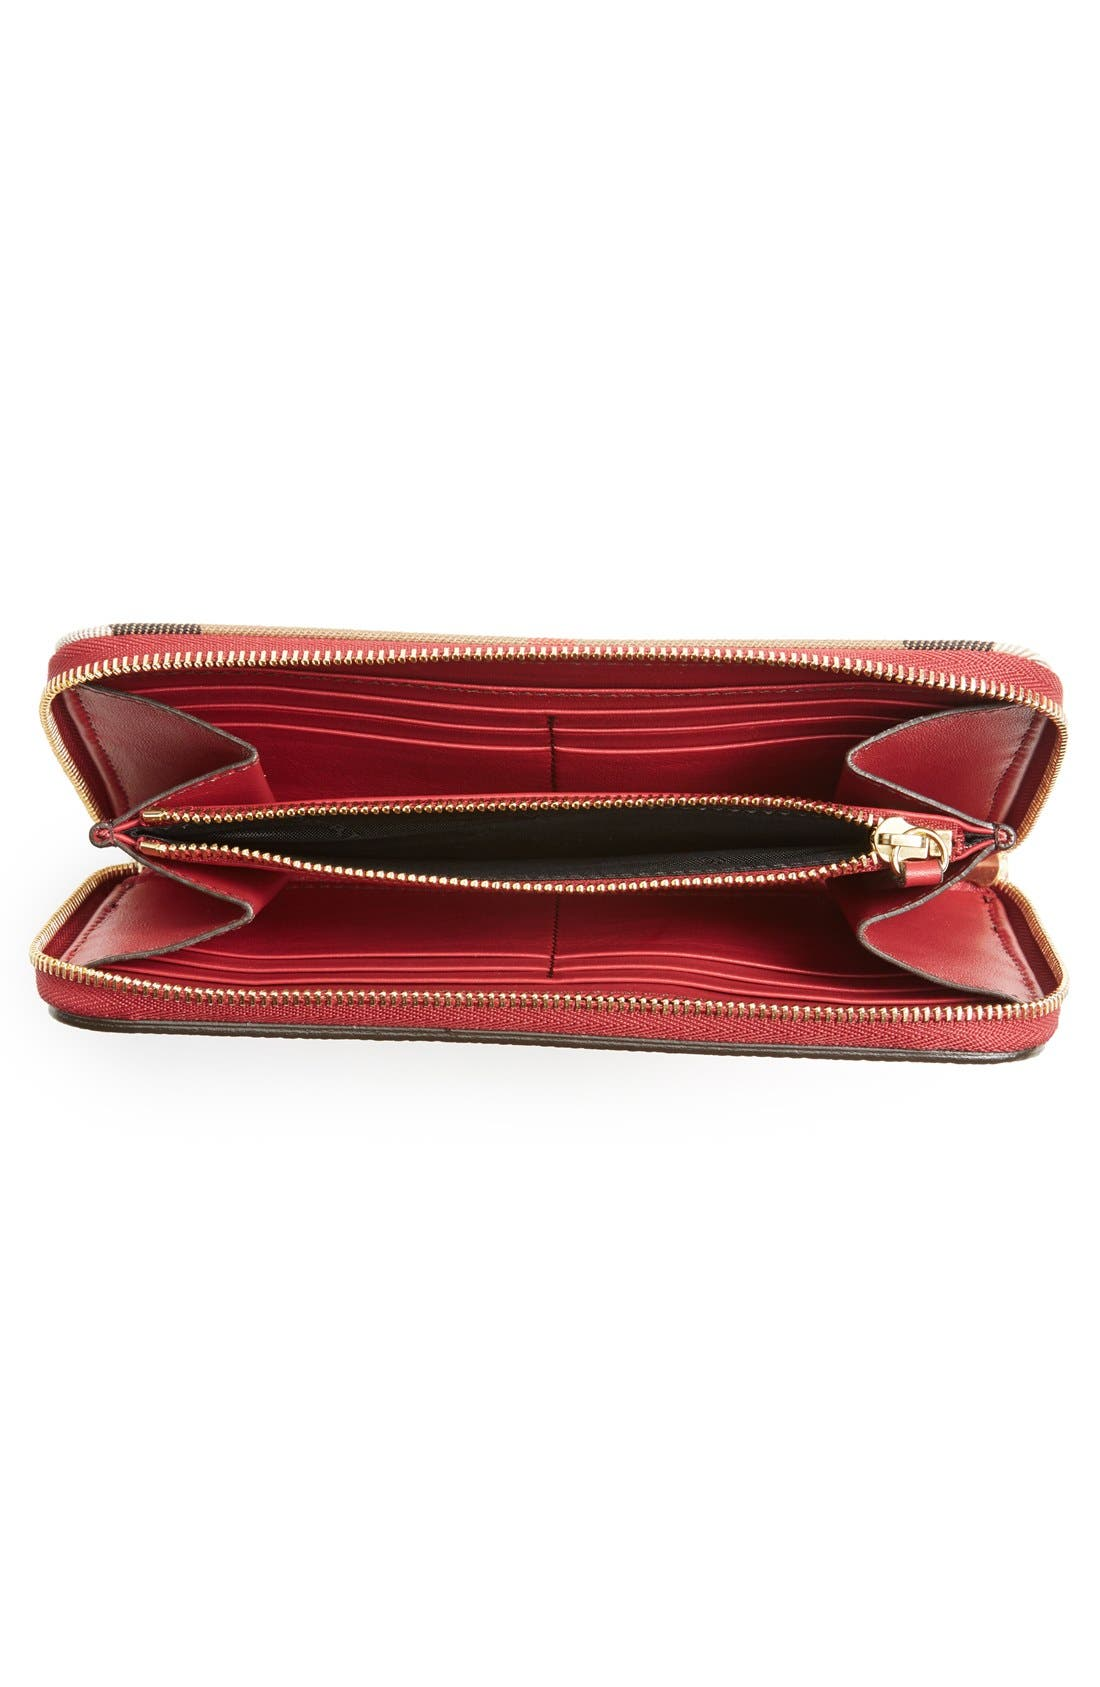 'Elmore' House Check & Leather Zip Around Wallet,                             Alternate thumbnail 6, color,                             600